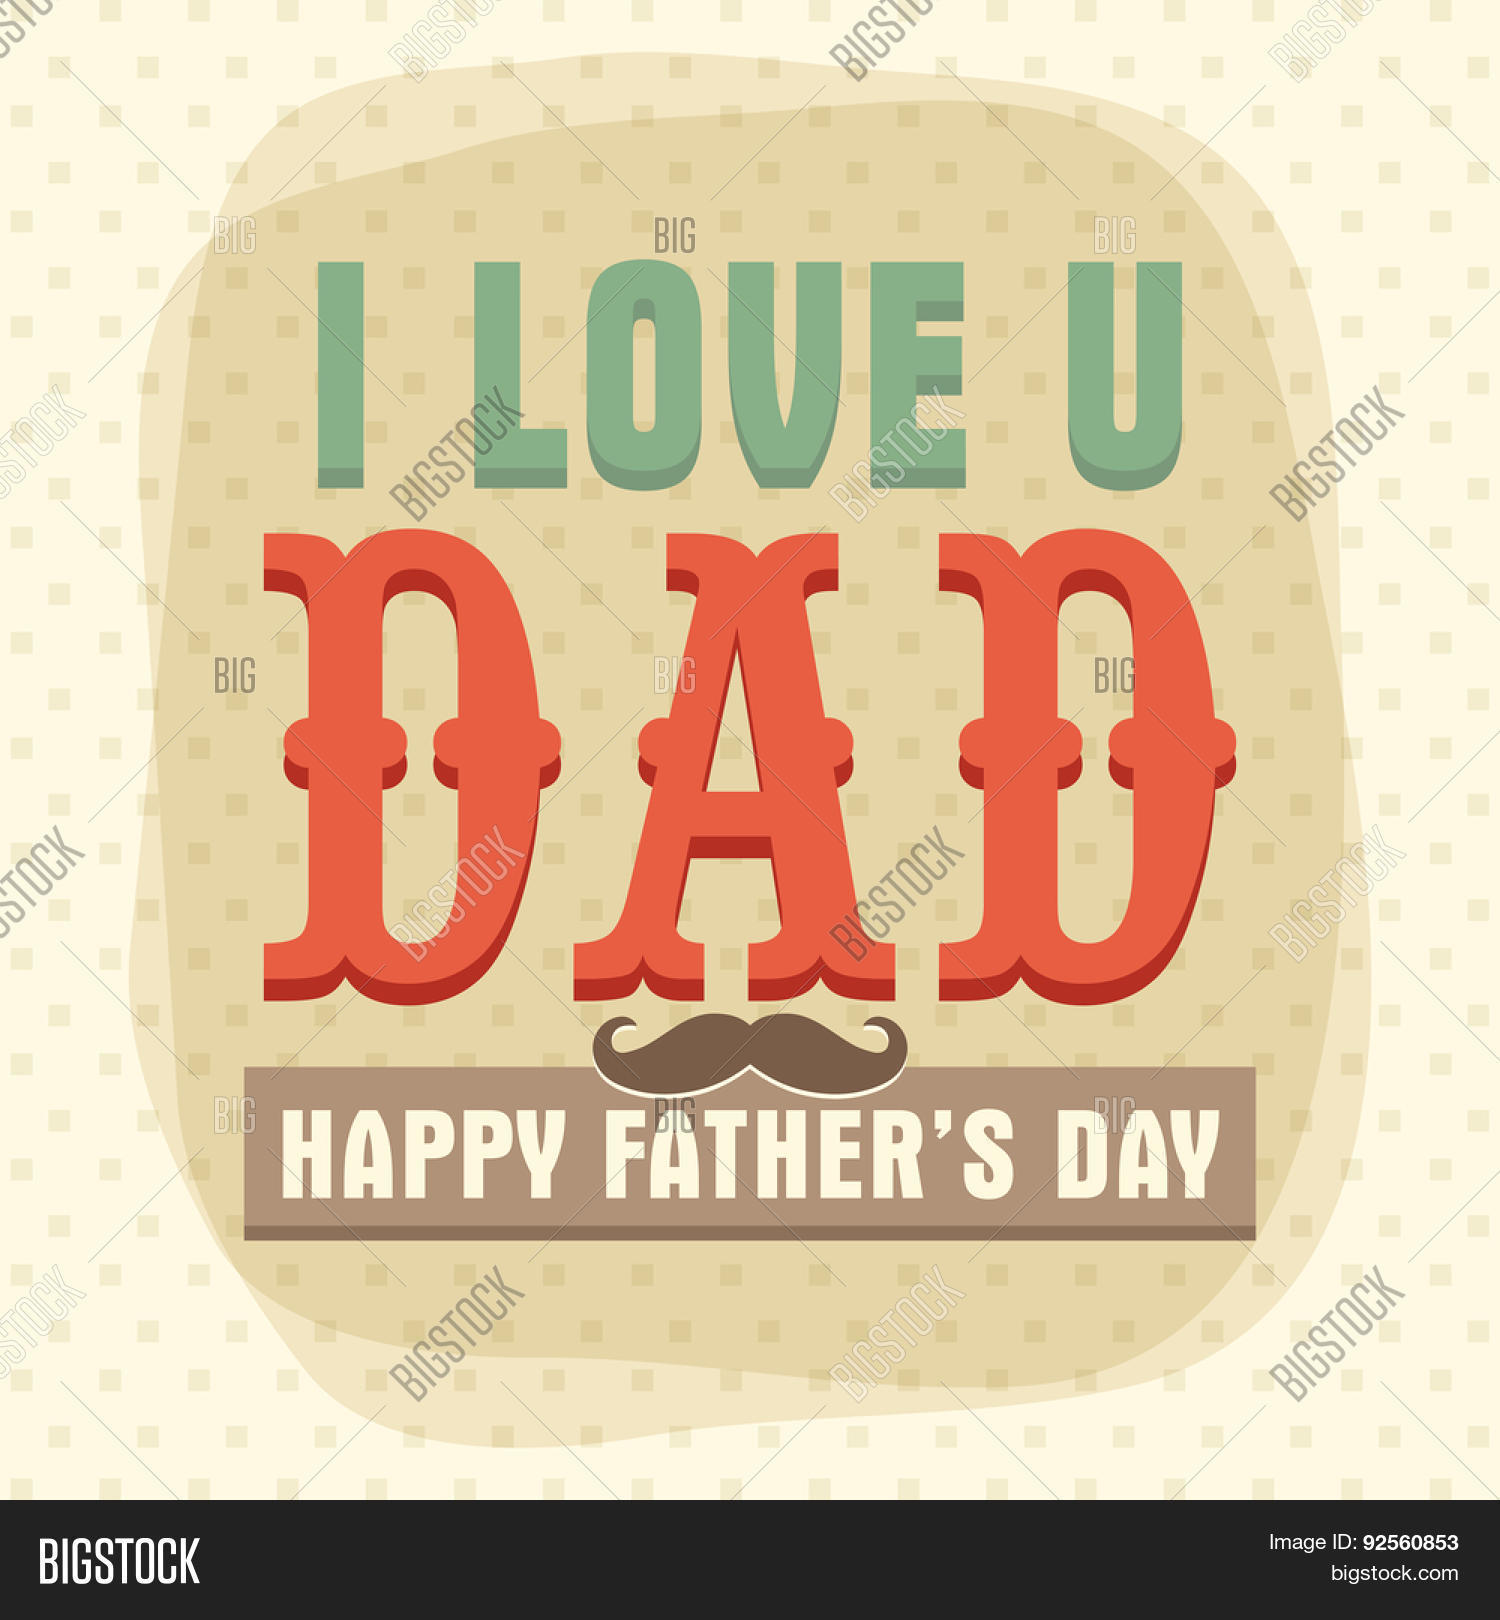 Vintage greeting card vector photo free trial bigstock vintage greeting card design decorated with 3d text i love u dad and mustache for happy m4hsunfo